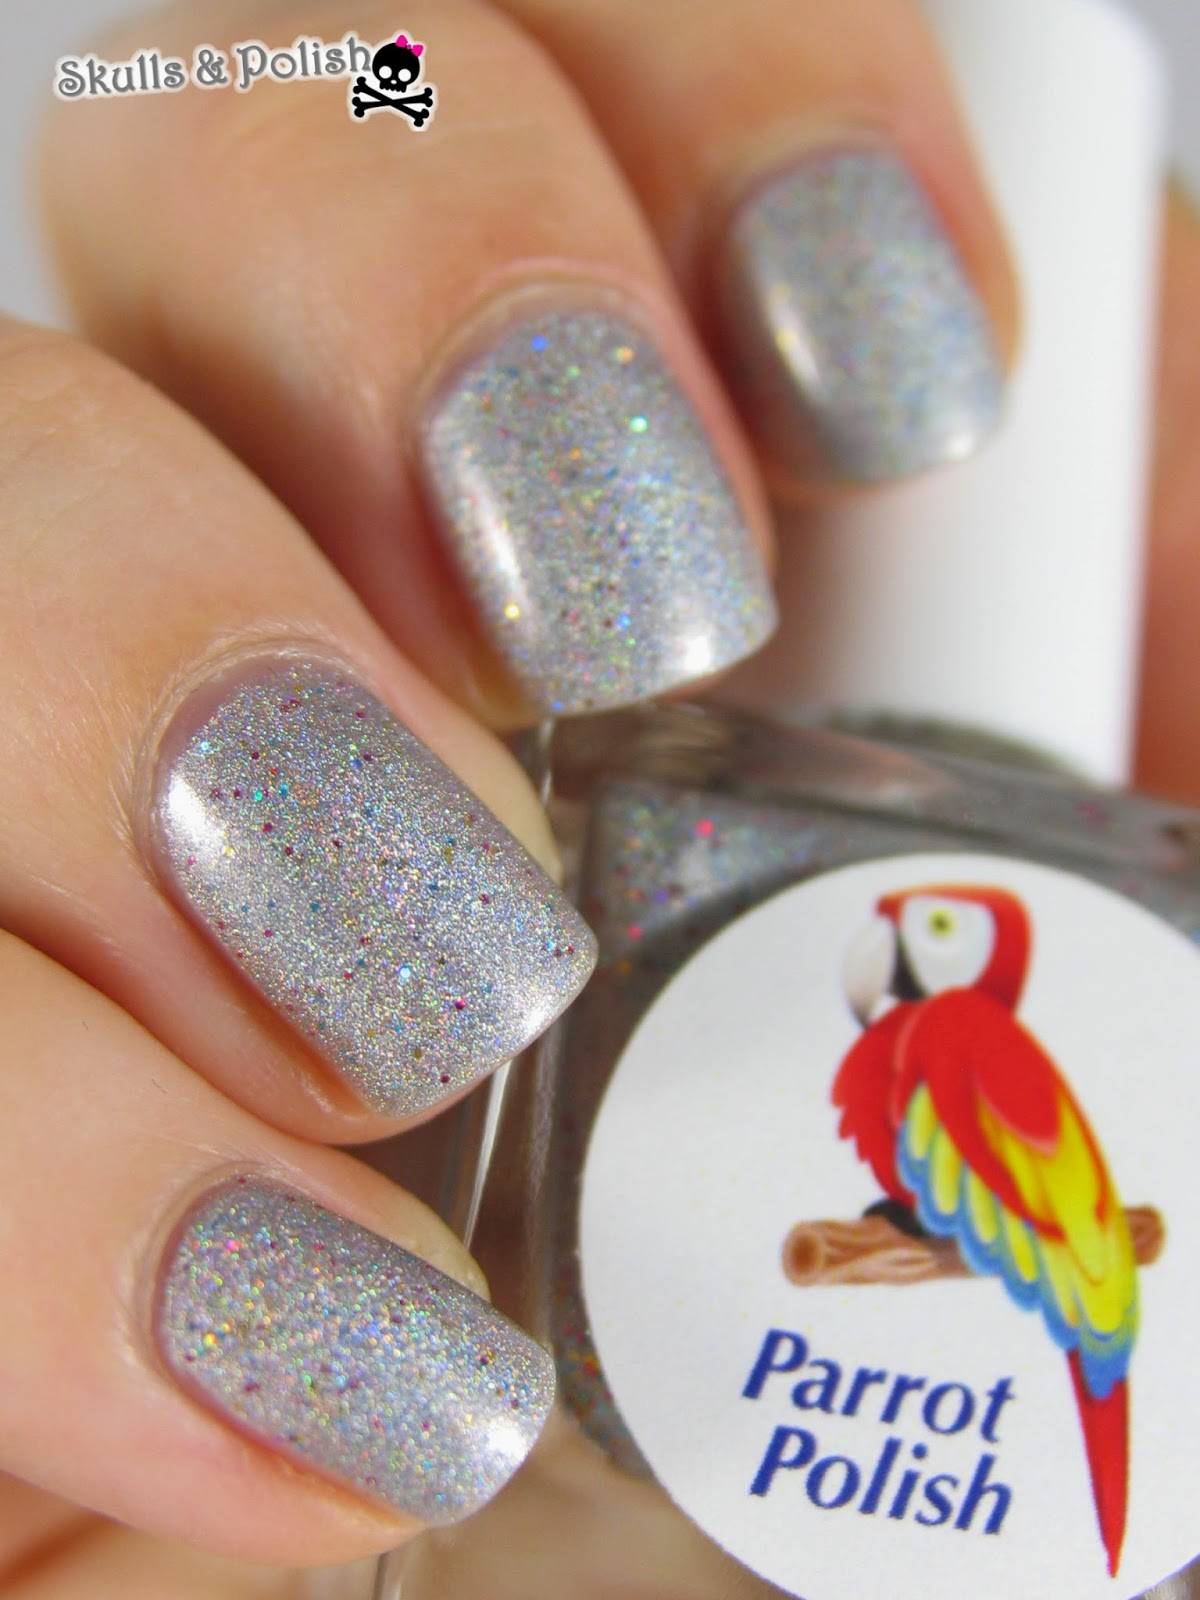 Abyssia_Parrot_Polish_swatch